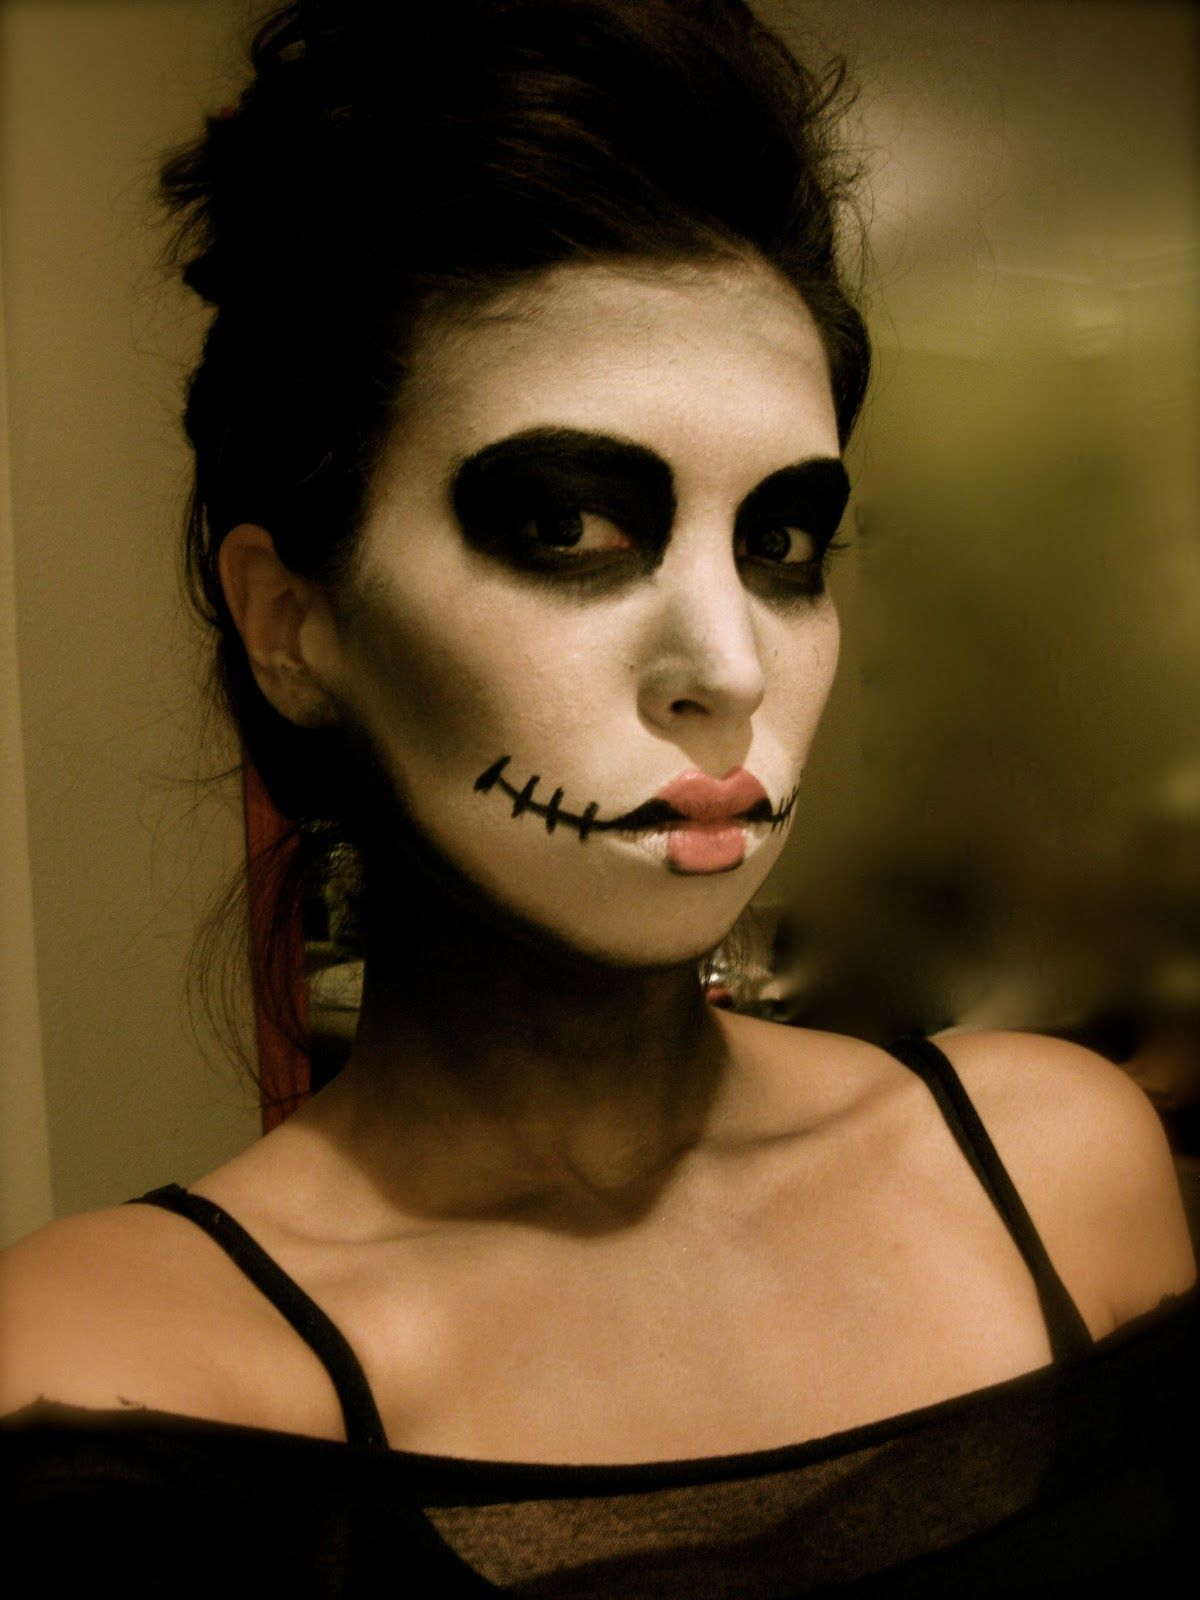 Want to do my makeup something like this for Halloween